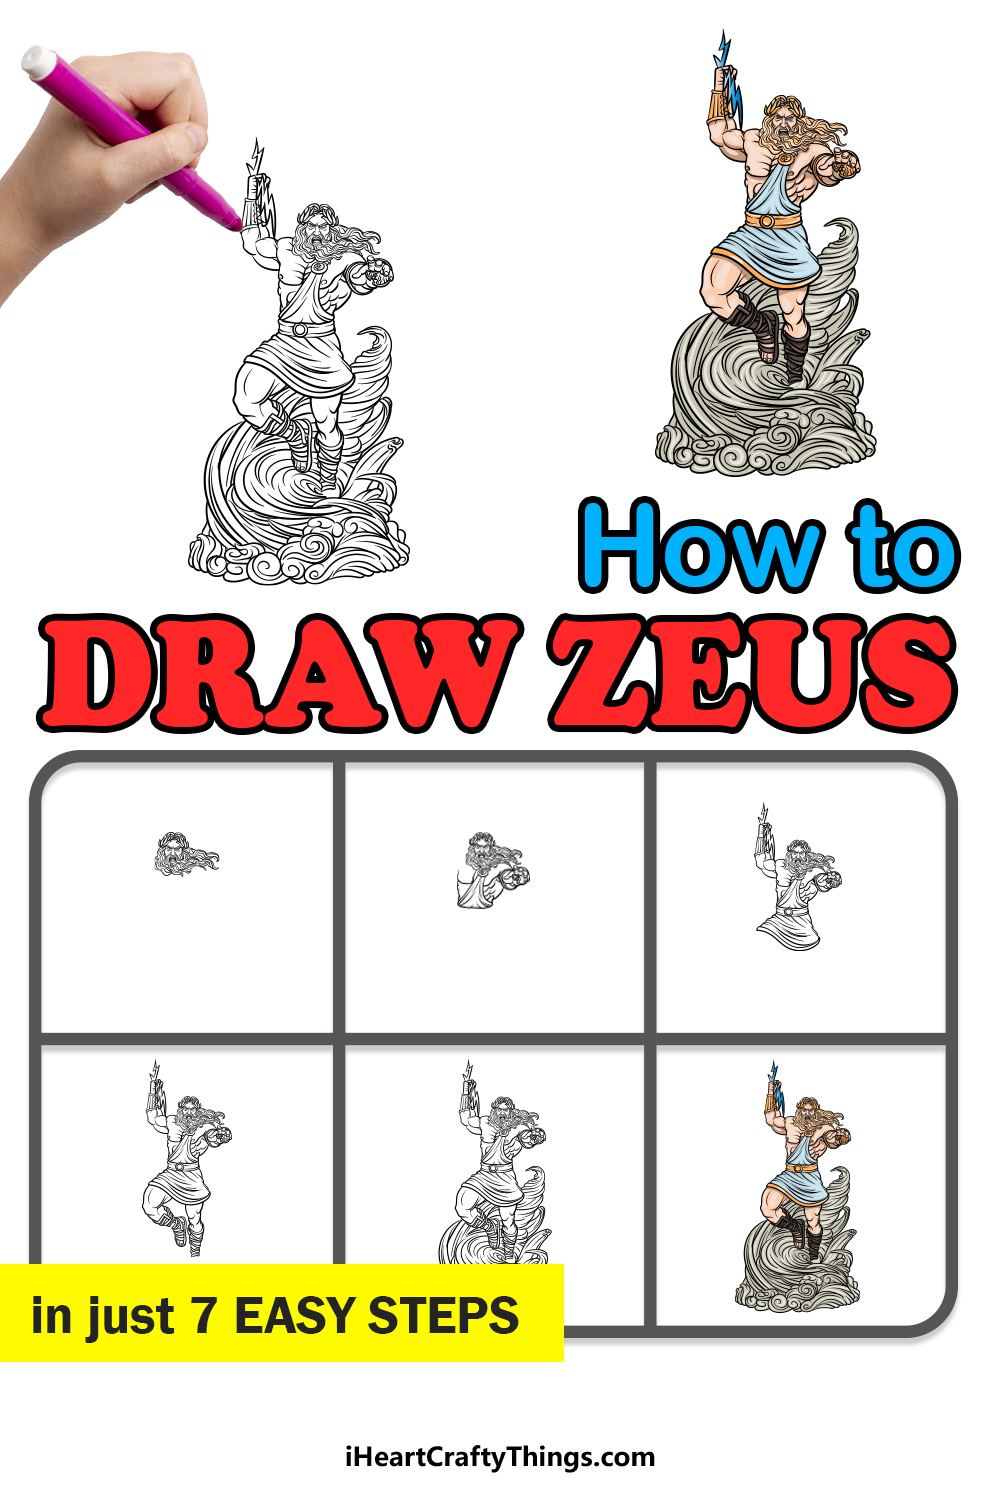 how to draw Zeus in 7 easy steps